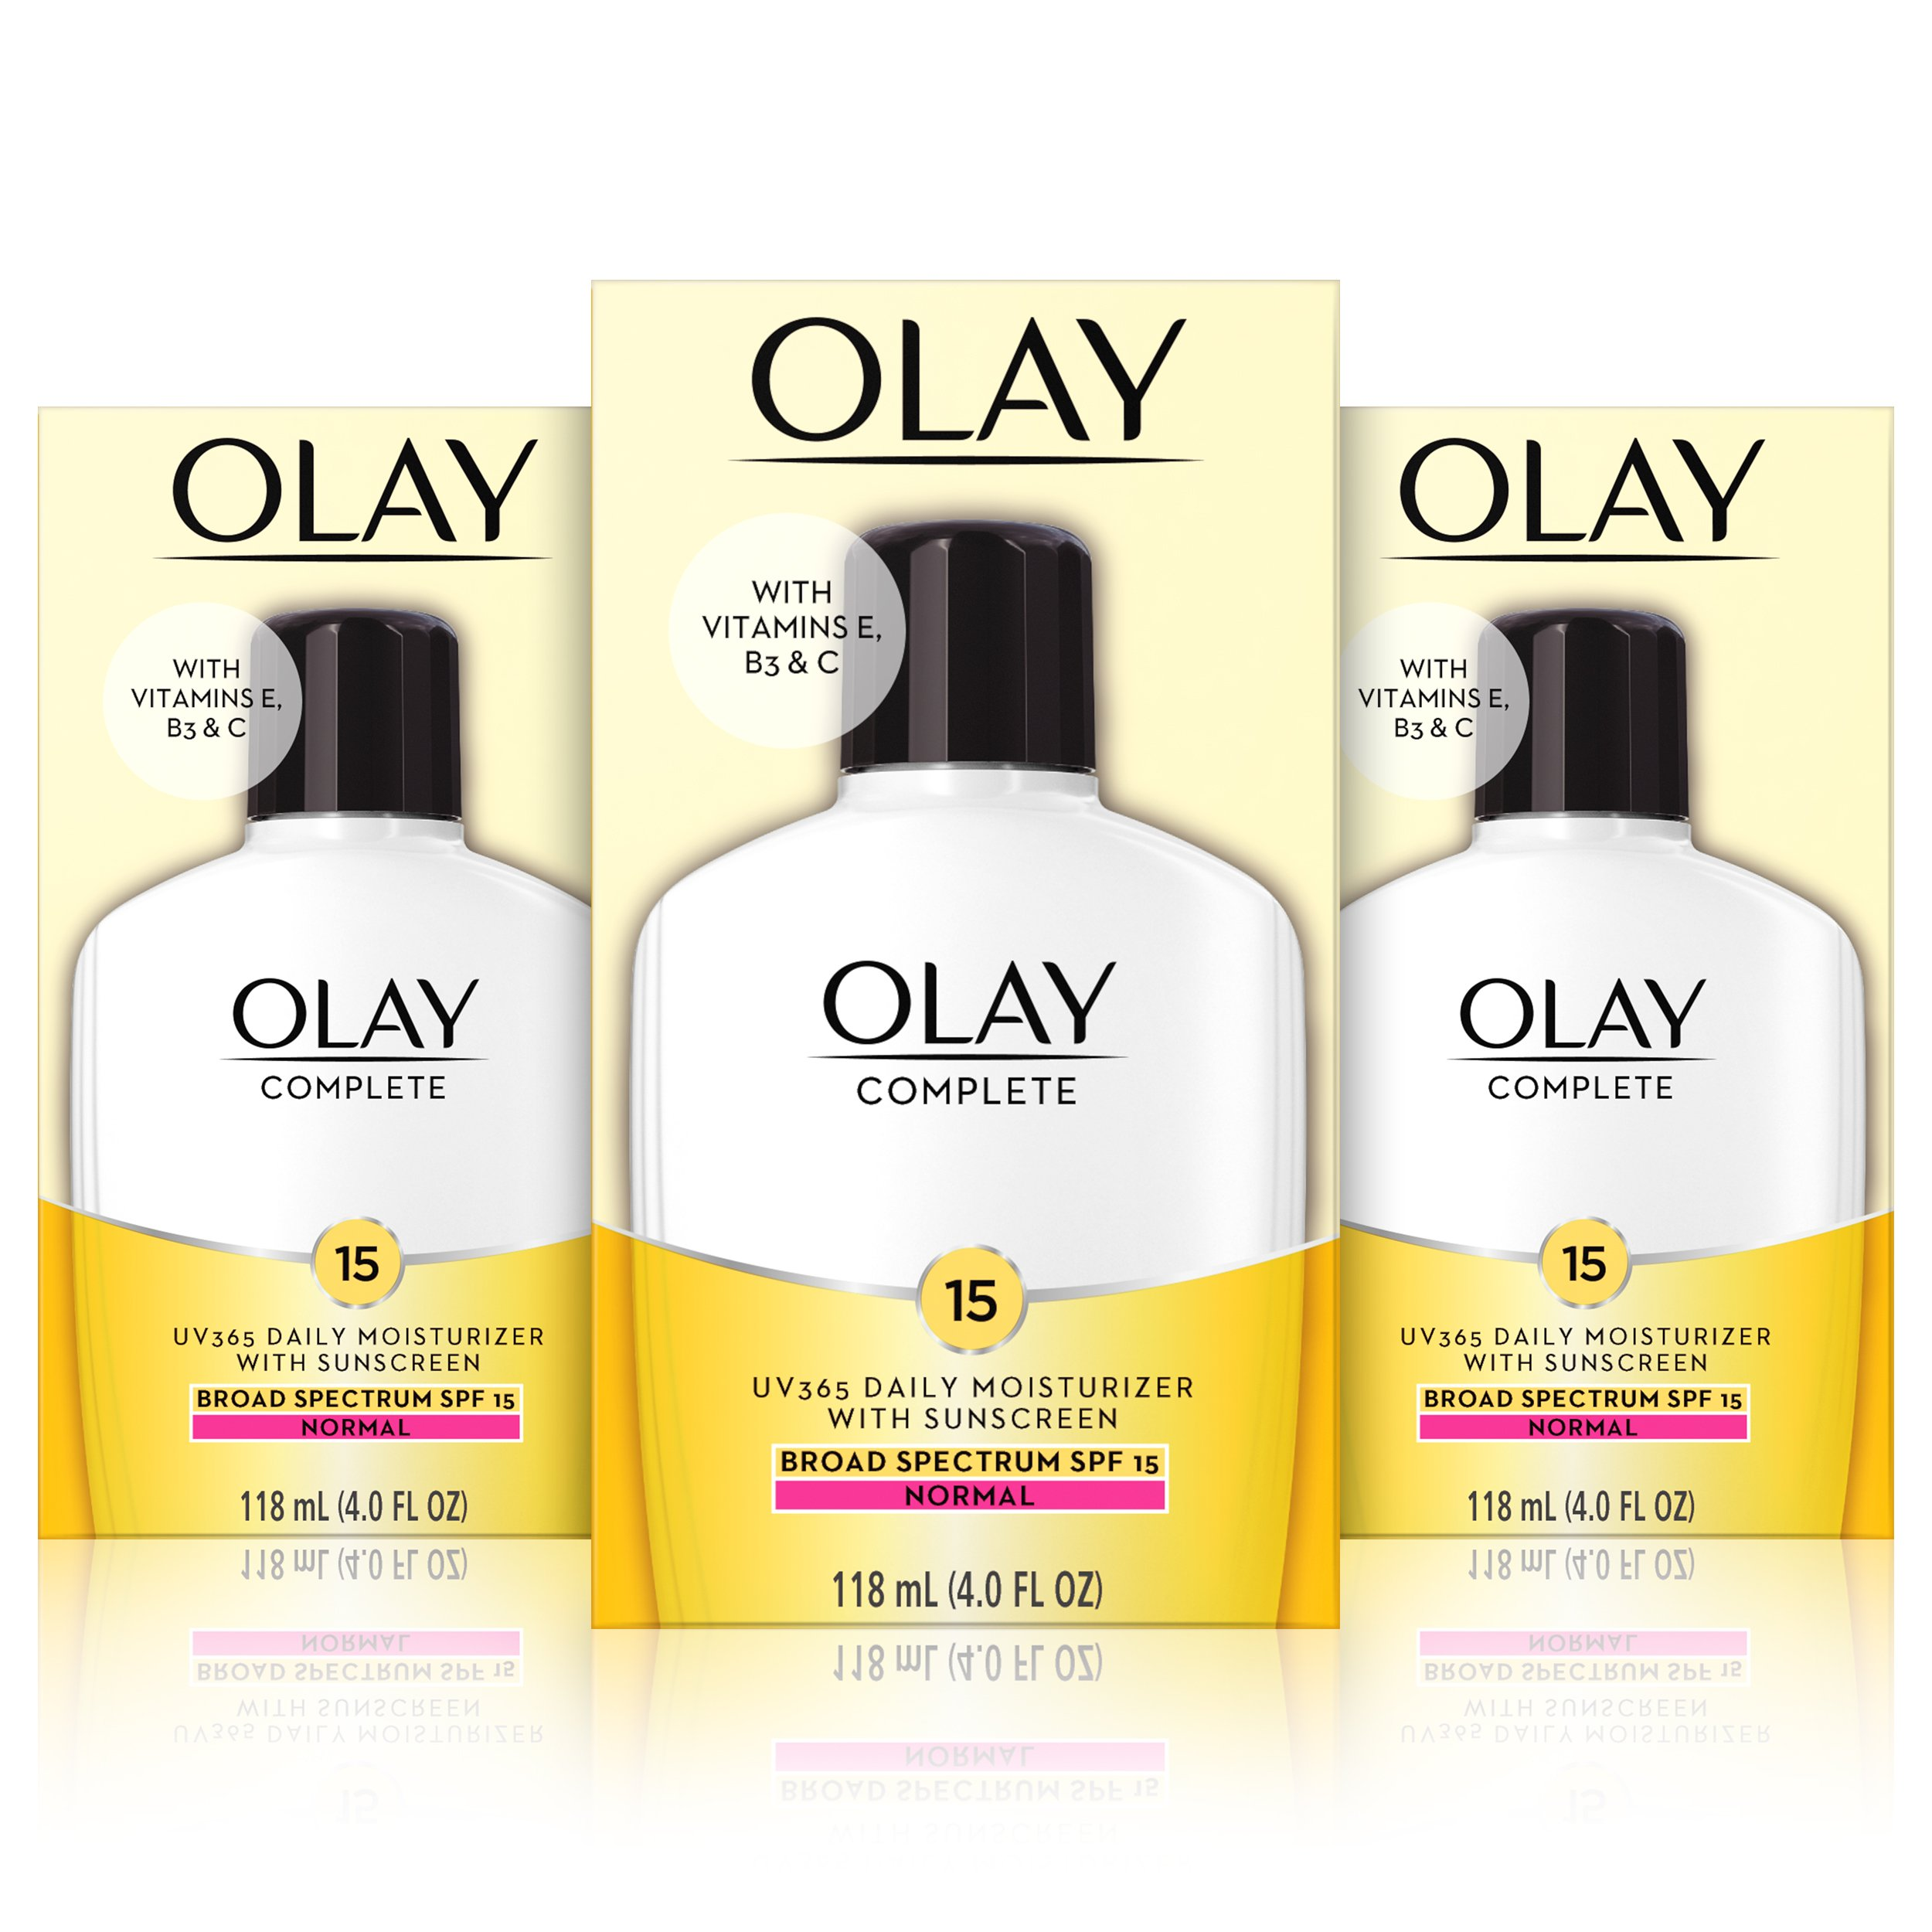 Olay Complete Lotion Moisturizer with SPF 15 Normal, 4.0 Fluid Ounce, 3 Count by Olay